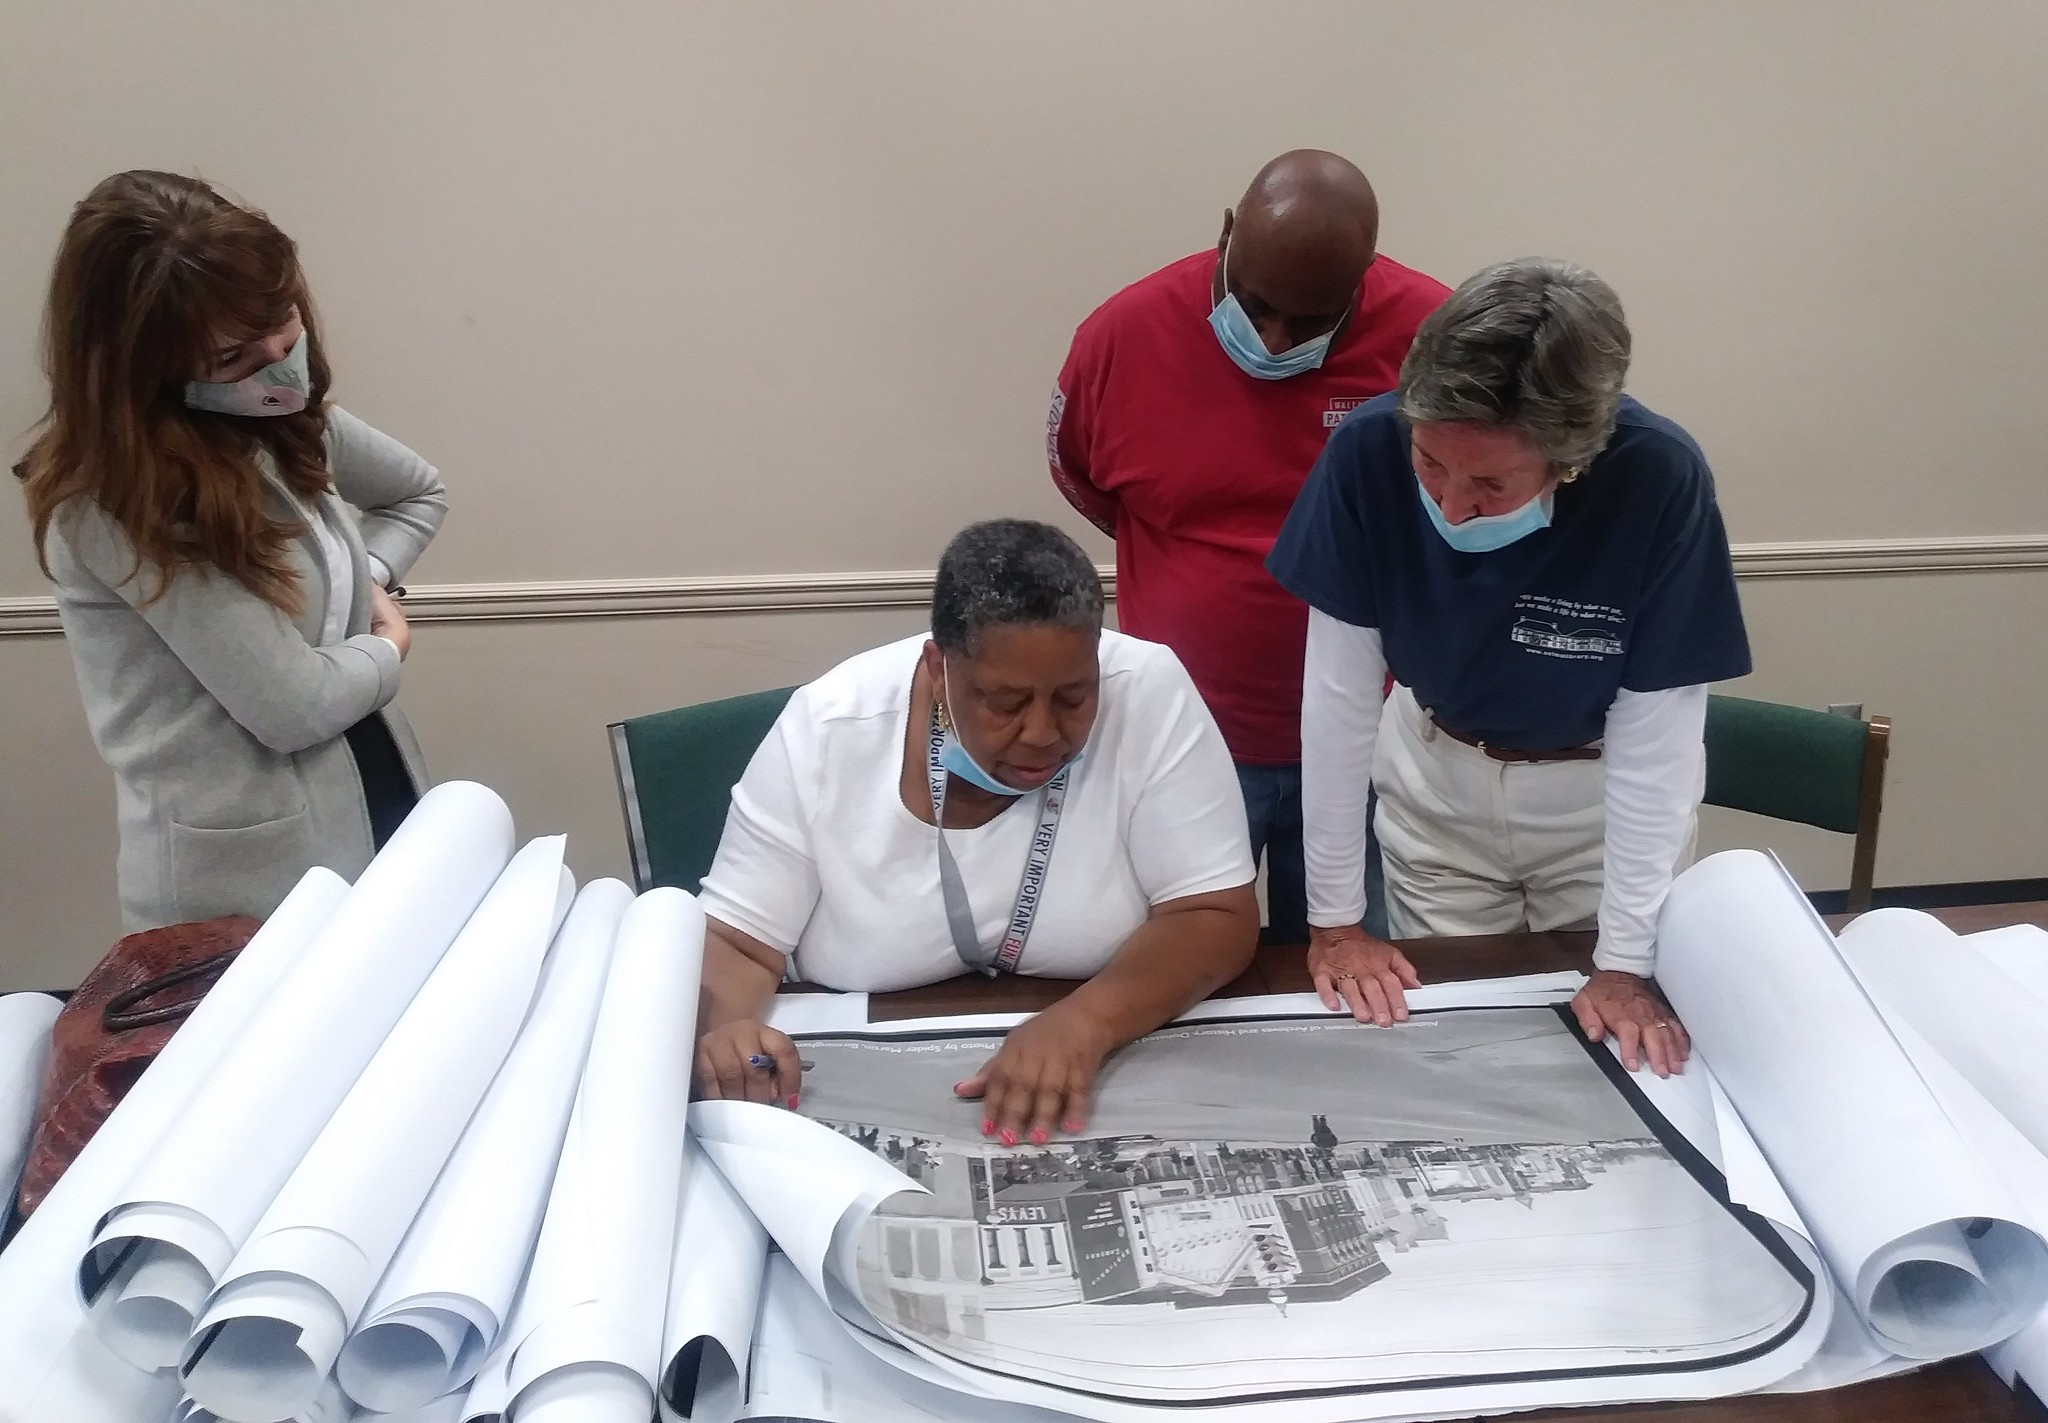 From left to right, Rachel Metcalf from the City of Selma, marcher JoAnn Bland, Selma Times reporter James Jones and Selma Public Library Director Becky Nichols recently met up to look at historic photos. Bland identified herself in one of the photos for the first time thanks to the project.